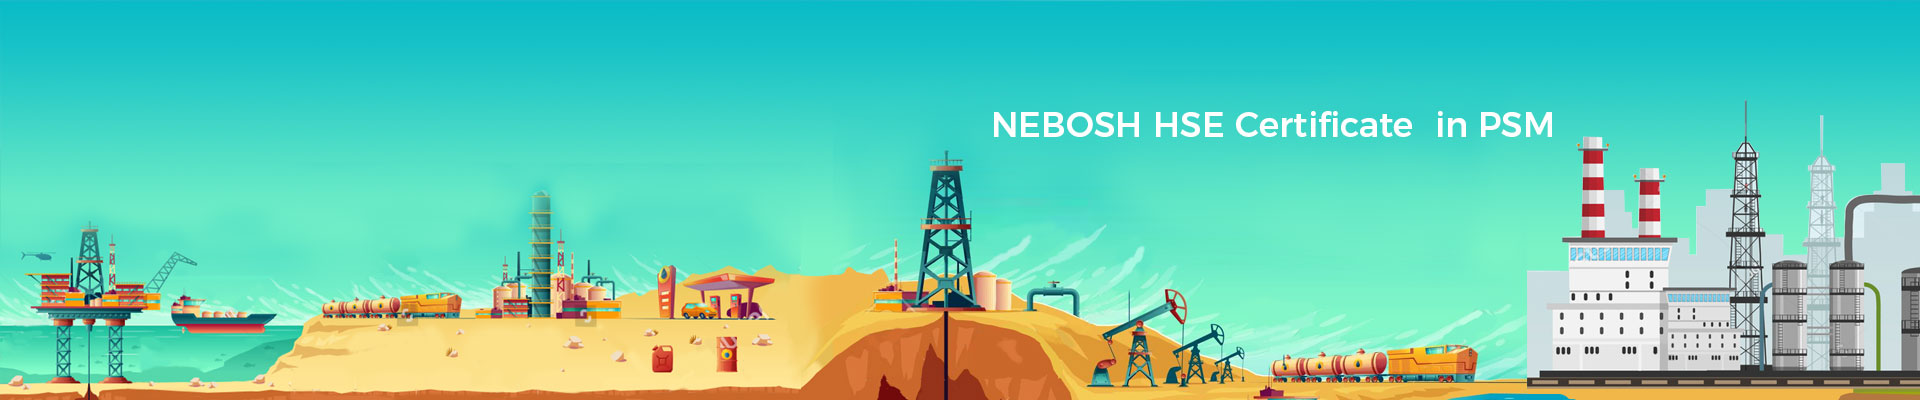 nebosh-hse-certificate-in-process-safety-management